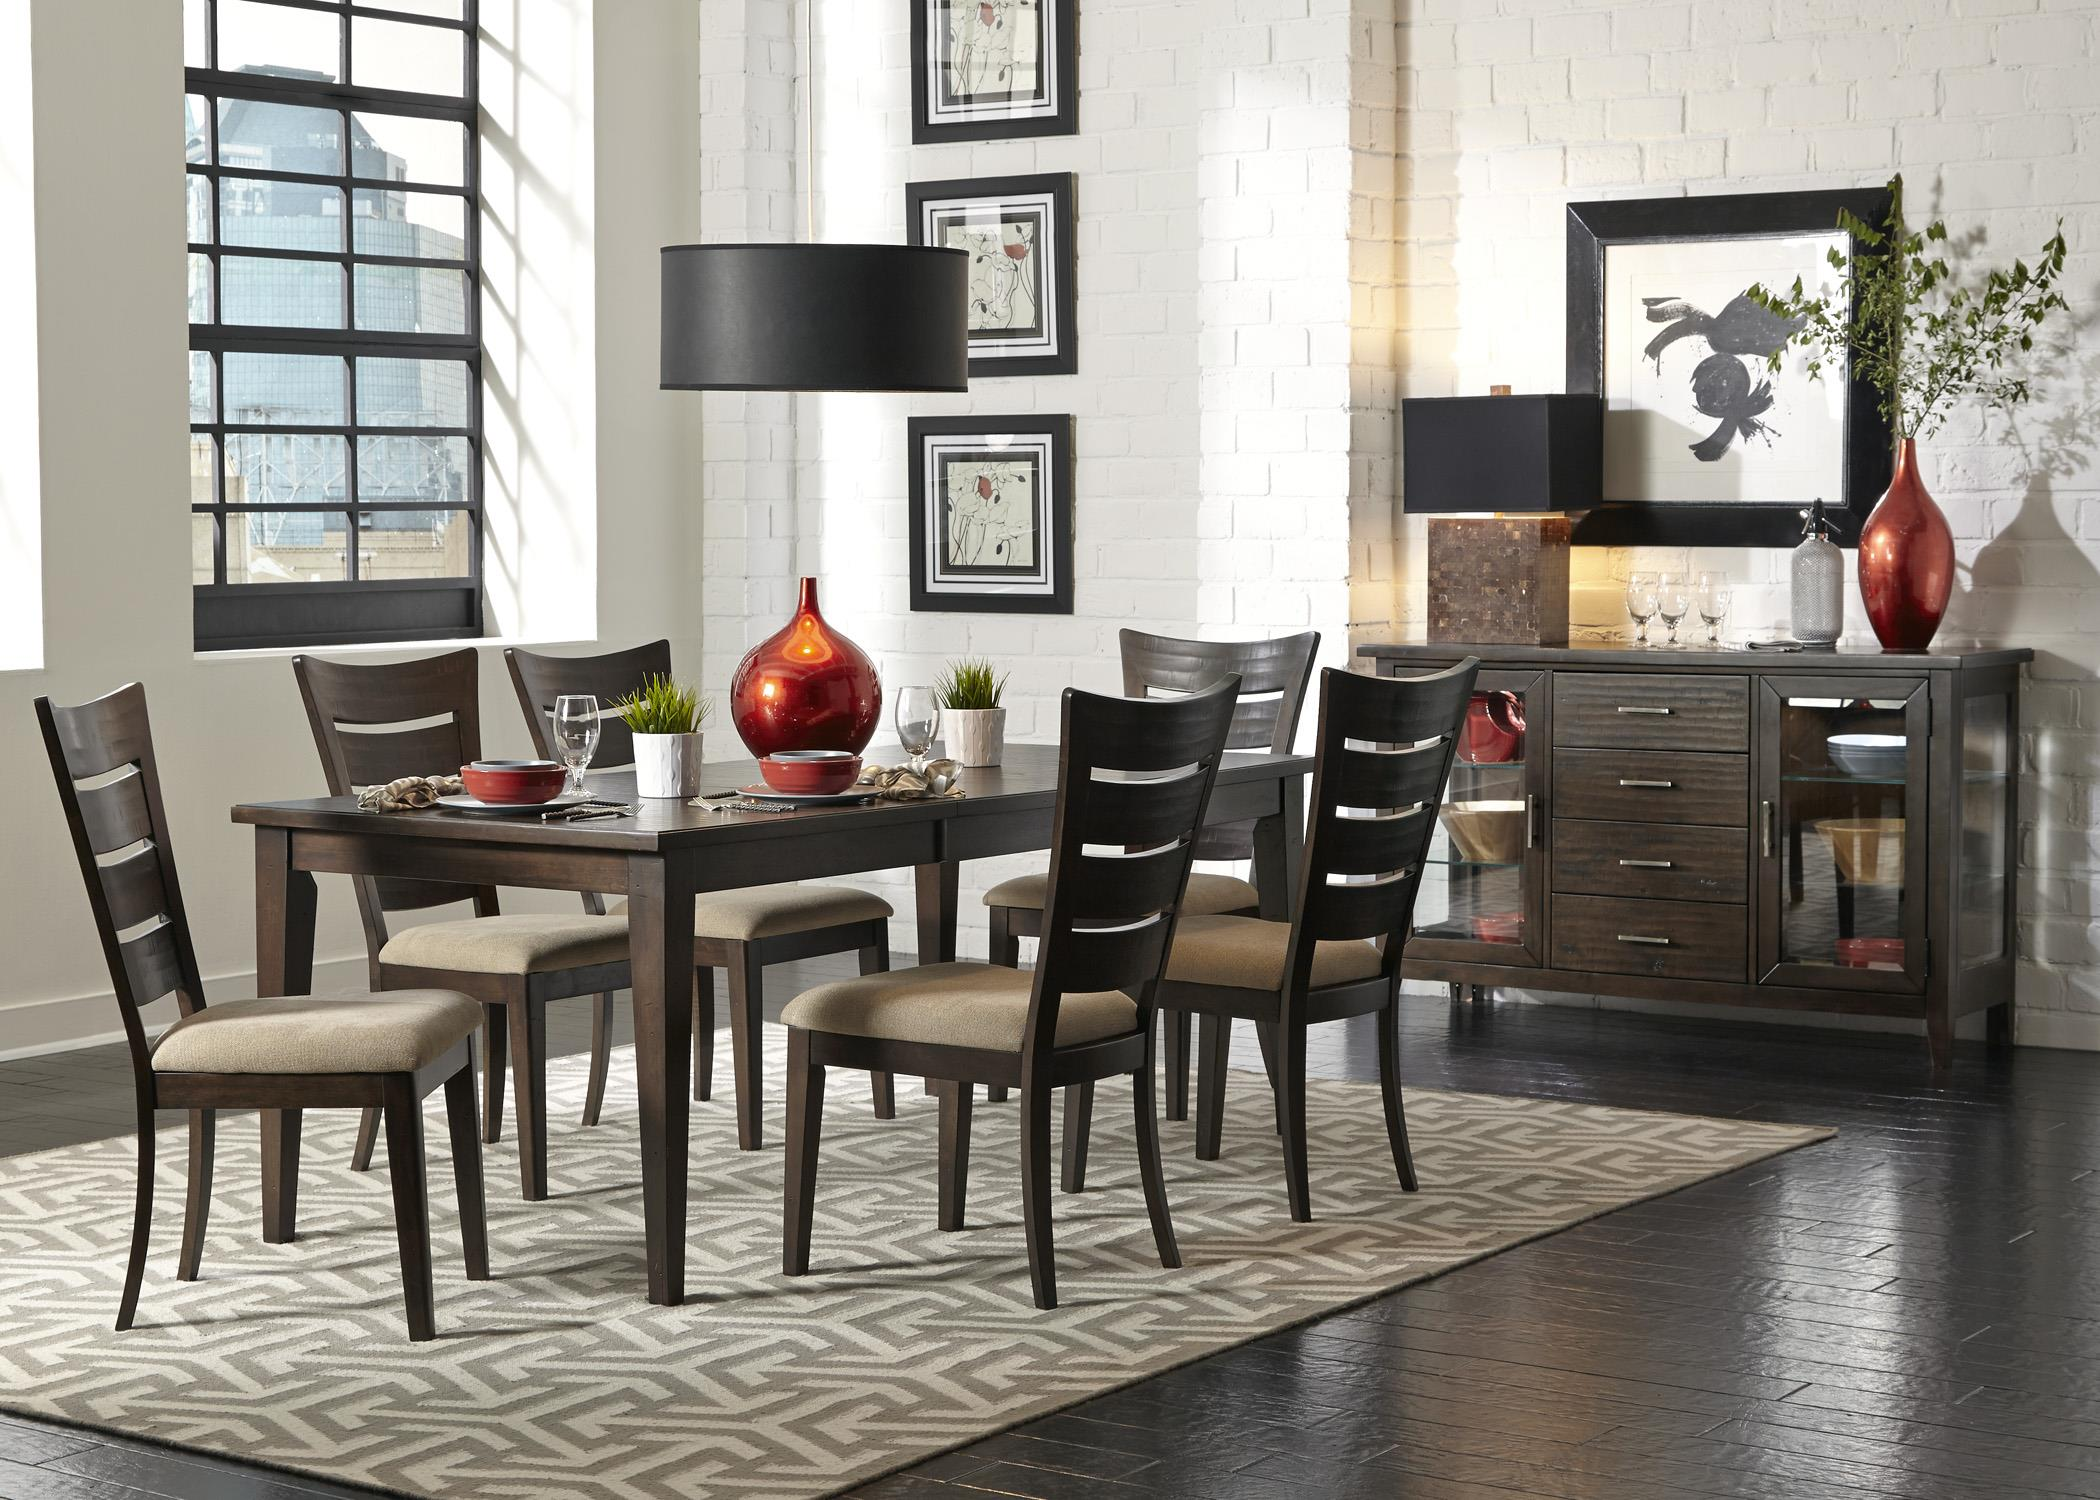 Liberty furniture pebble creek casual dining room group for Casual dining room